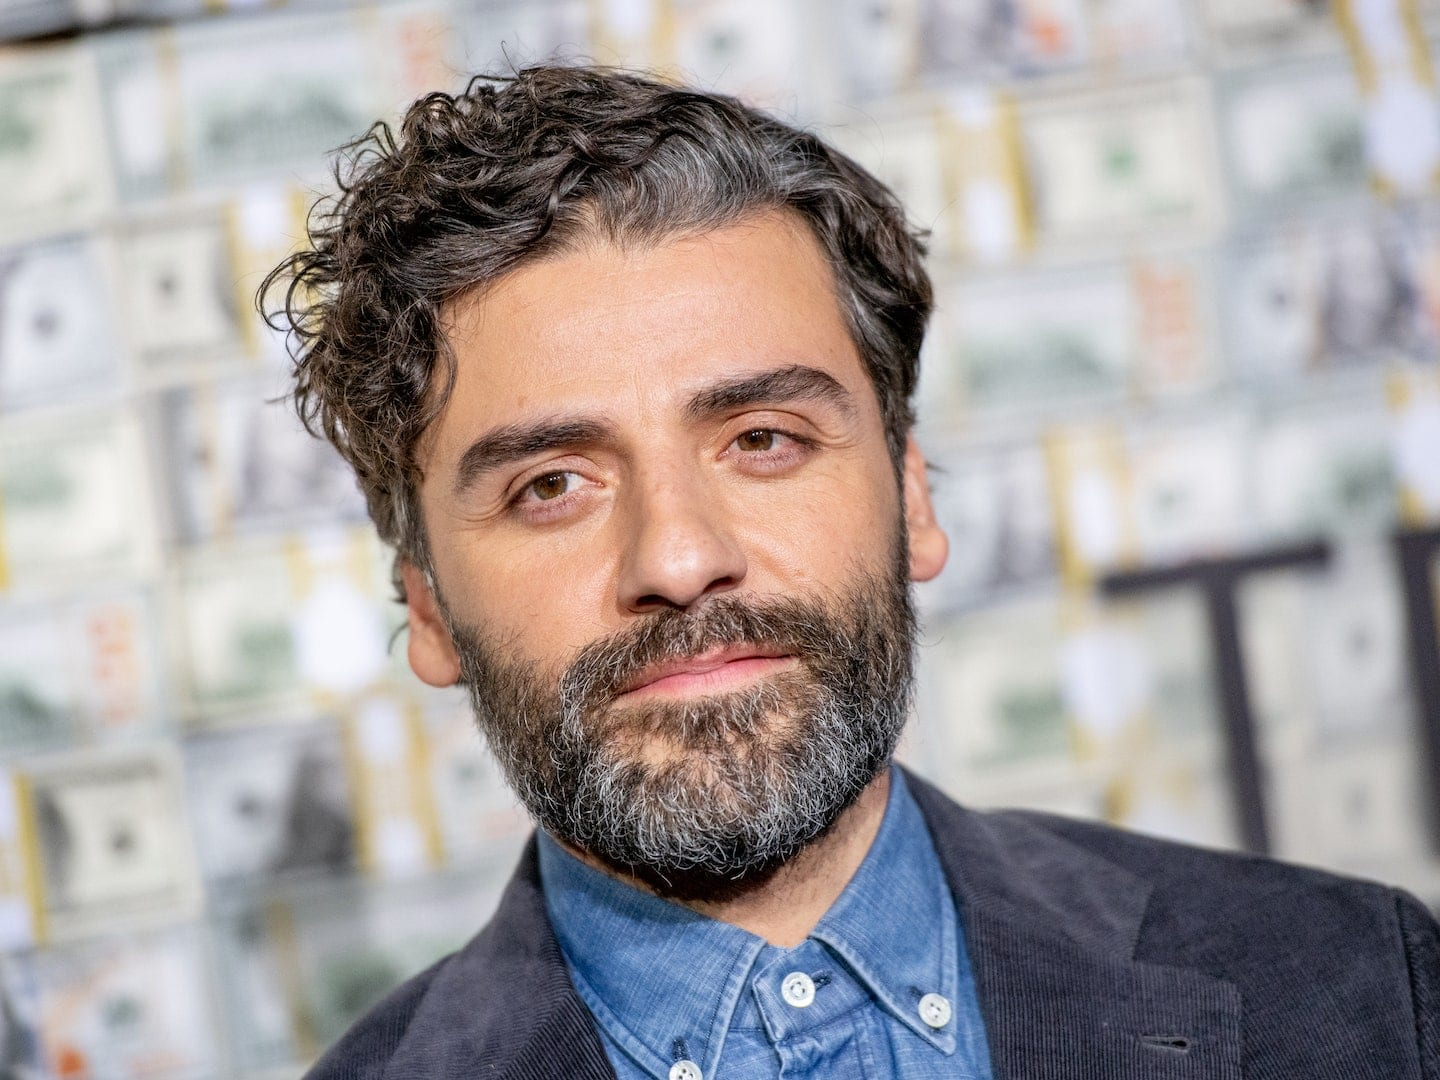 Francis and the Godfather, Oscar Isaac